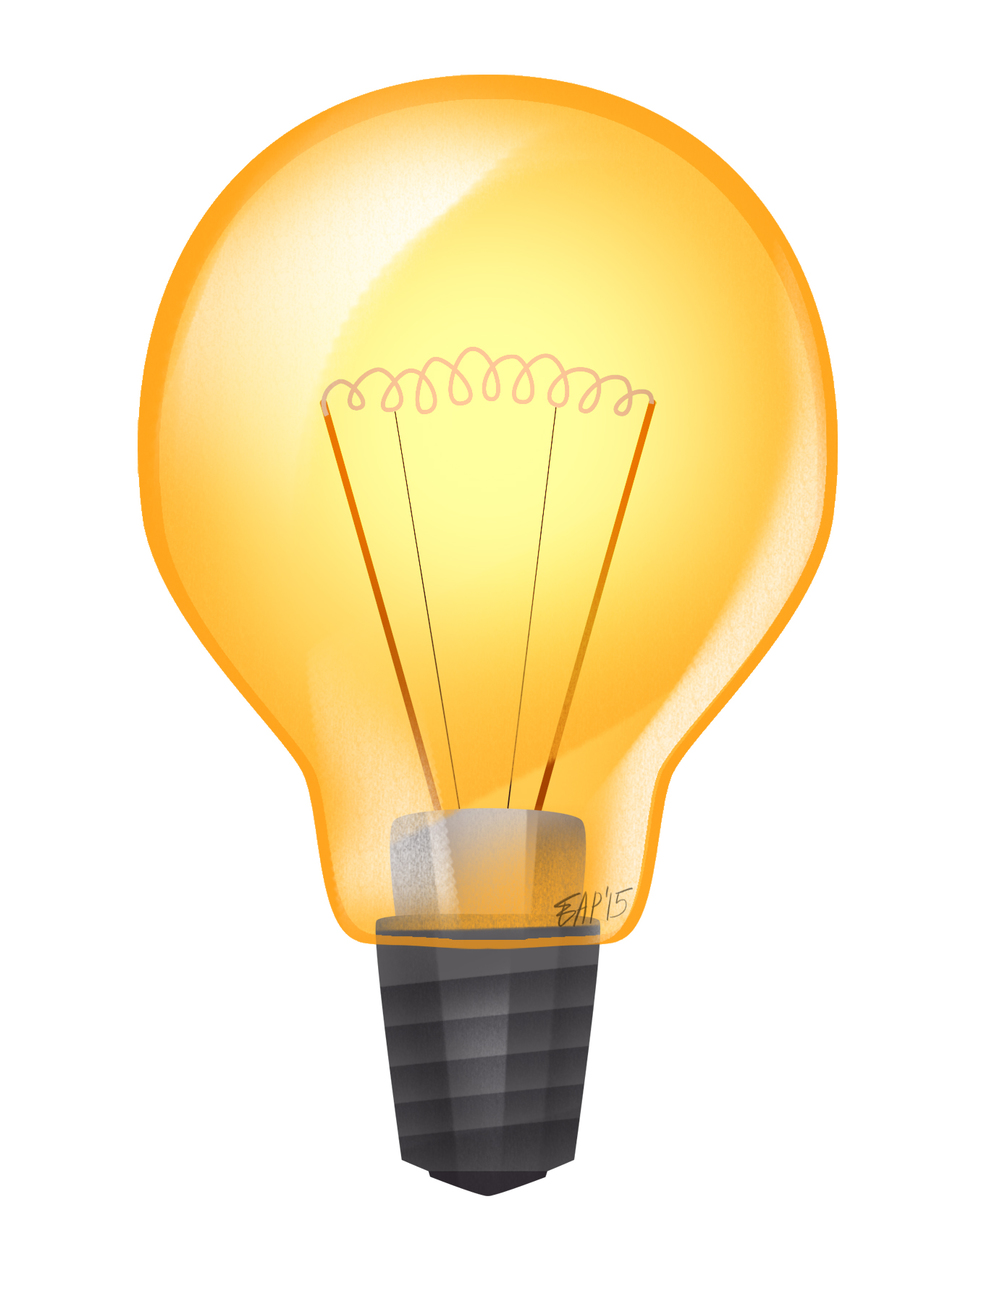 LightBulb_shot1.jpg